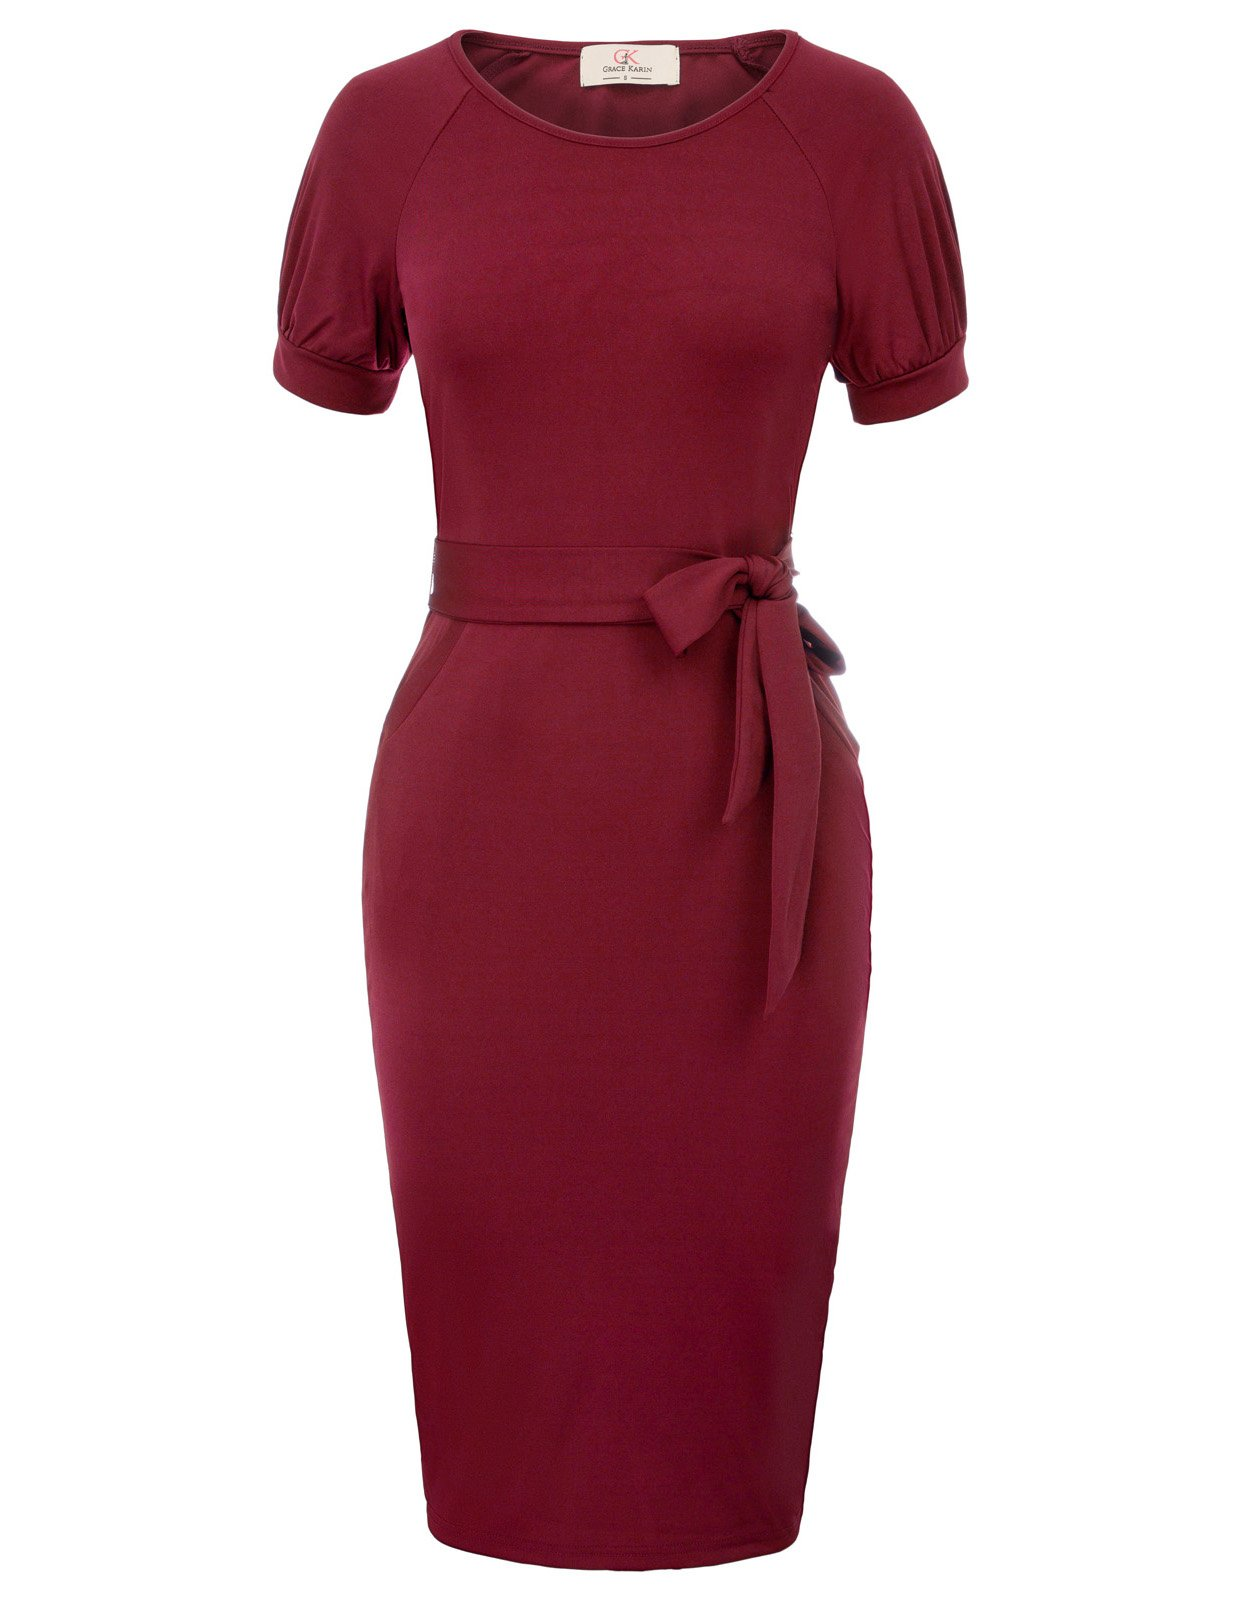 Available at Amazon: GRACE KARIN Women Business Short Sleeve Bodycon Cocktail Pencil Dress with Belt